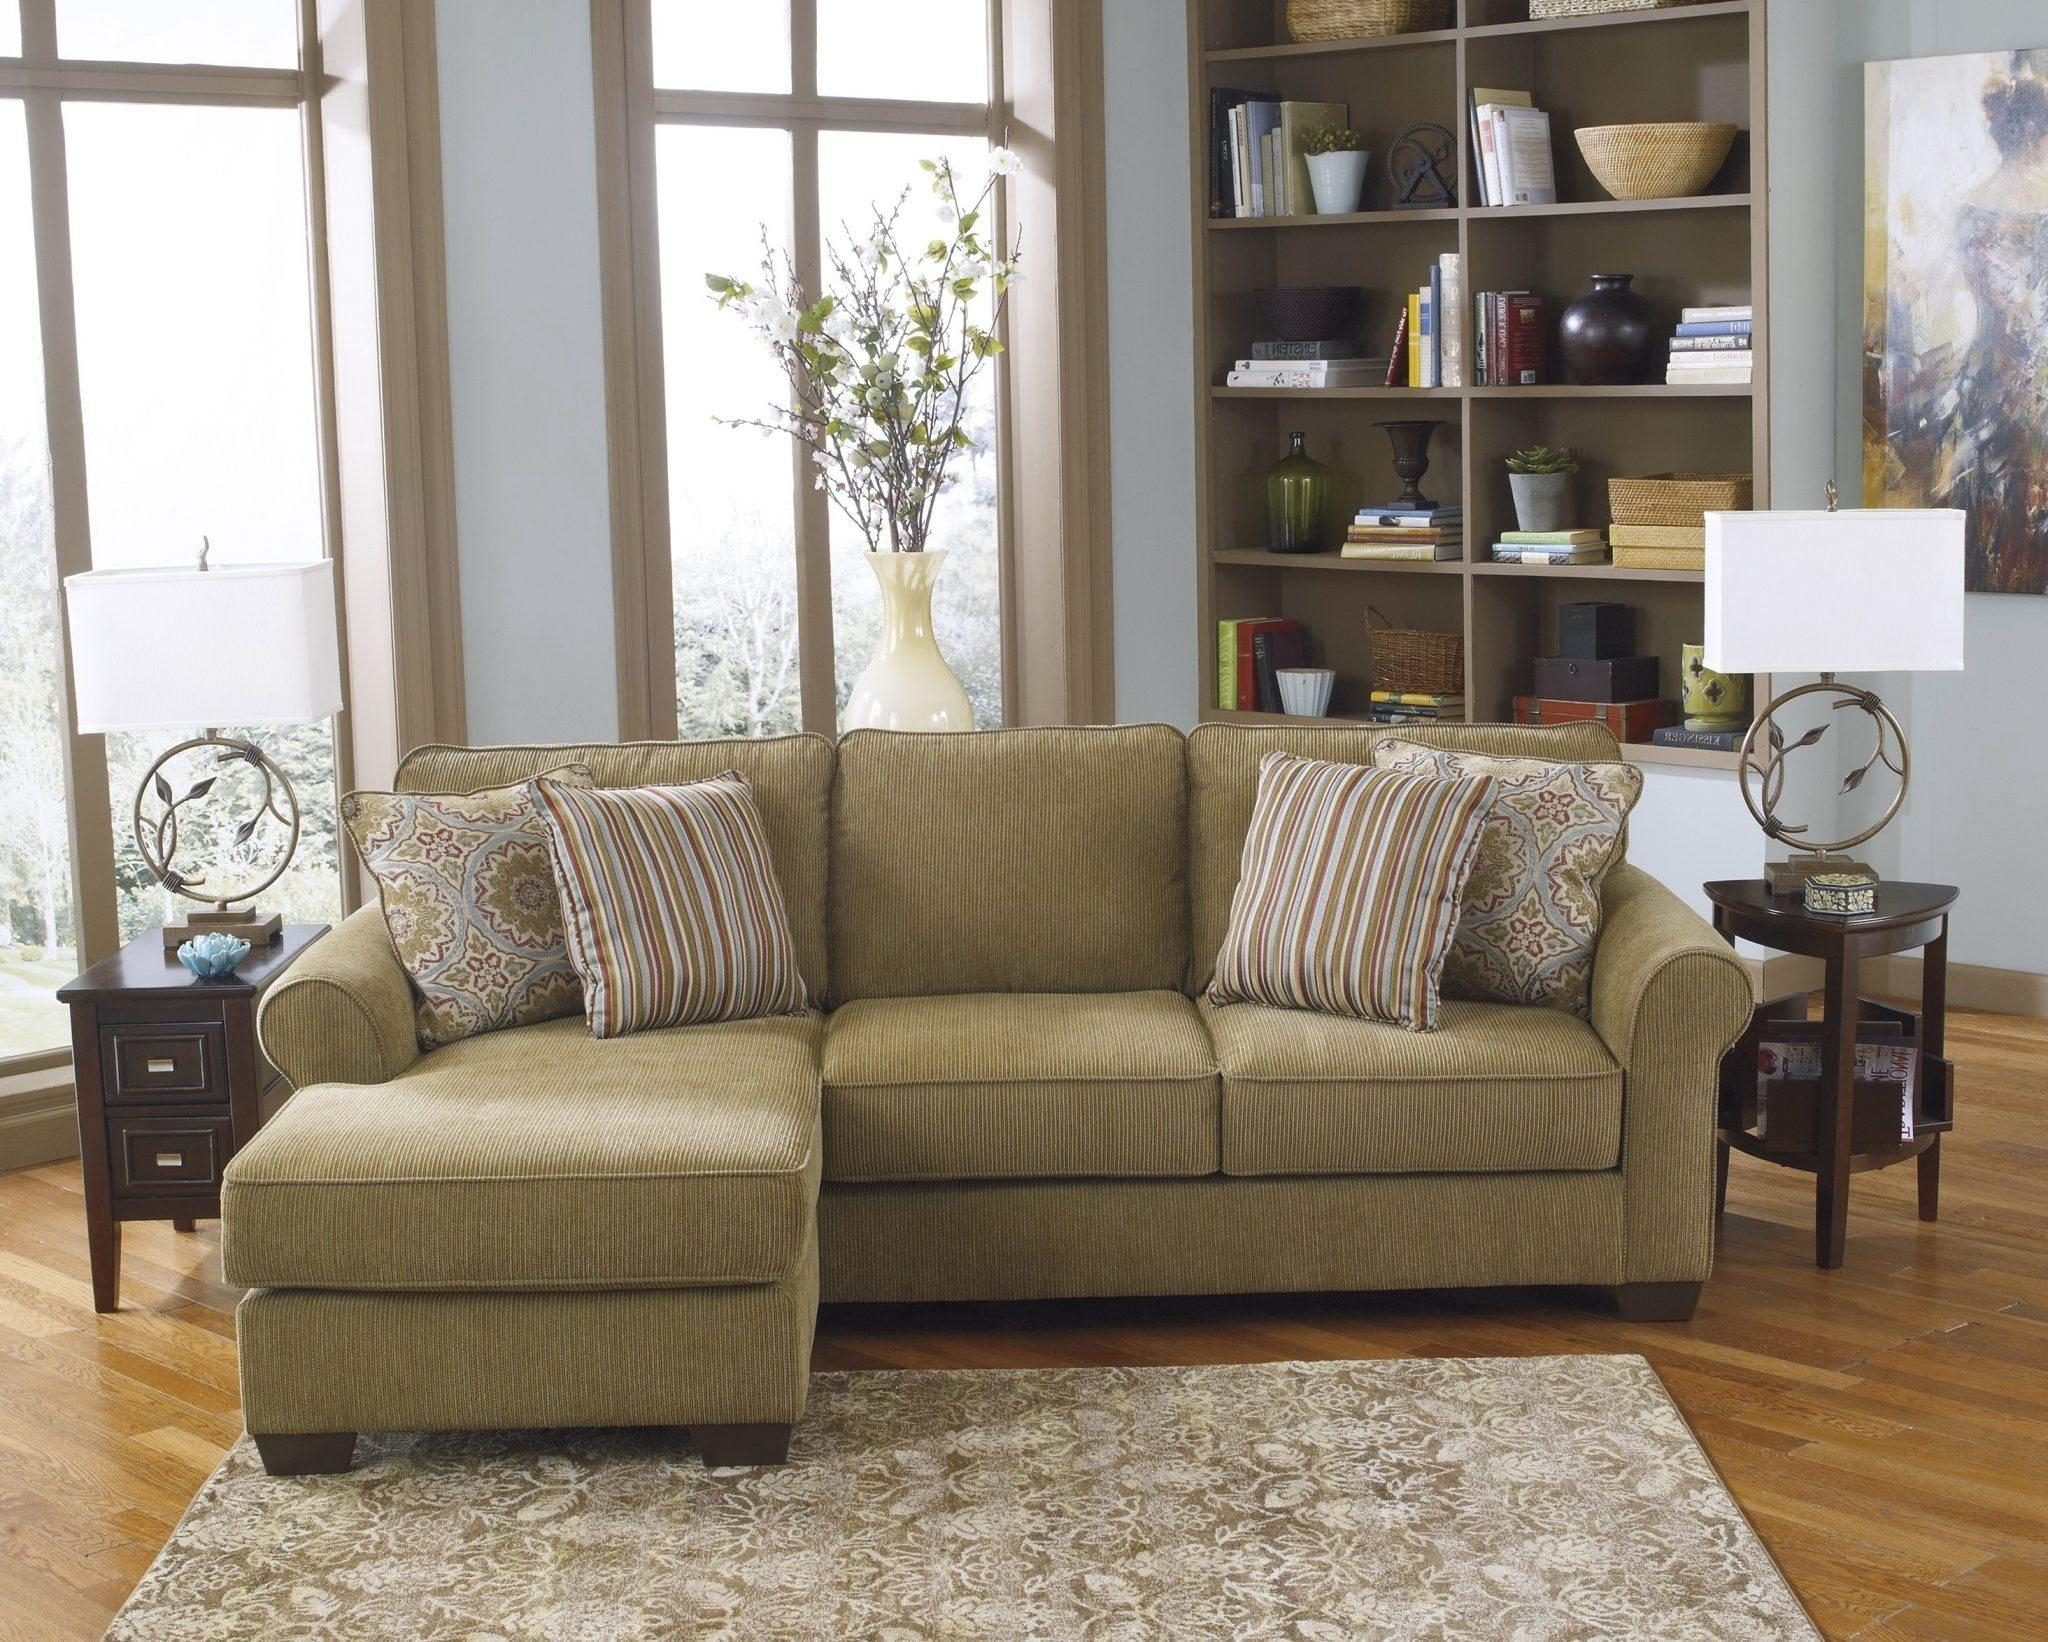 Berkline Sofa | Sofa Gallery | Kengire For Berkline Sofa (Image 4 of 20)